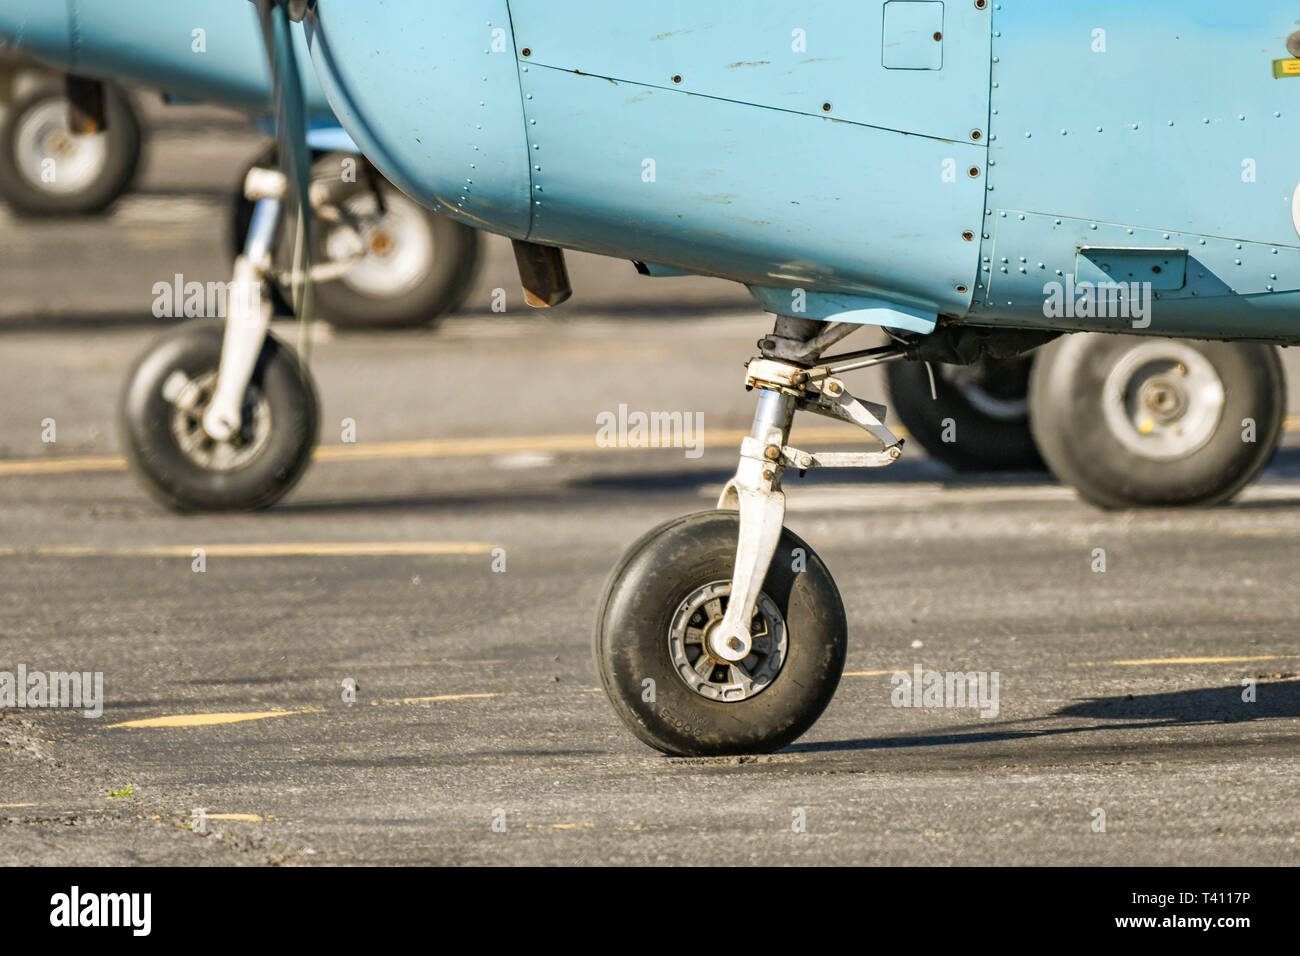 Aeroplane Tyre Stock Photos & Aeroplane Tyre Stock Images